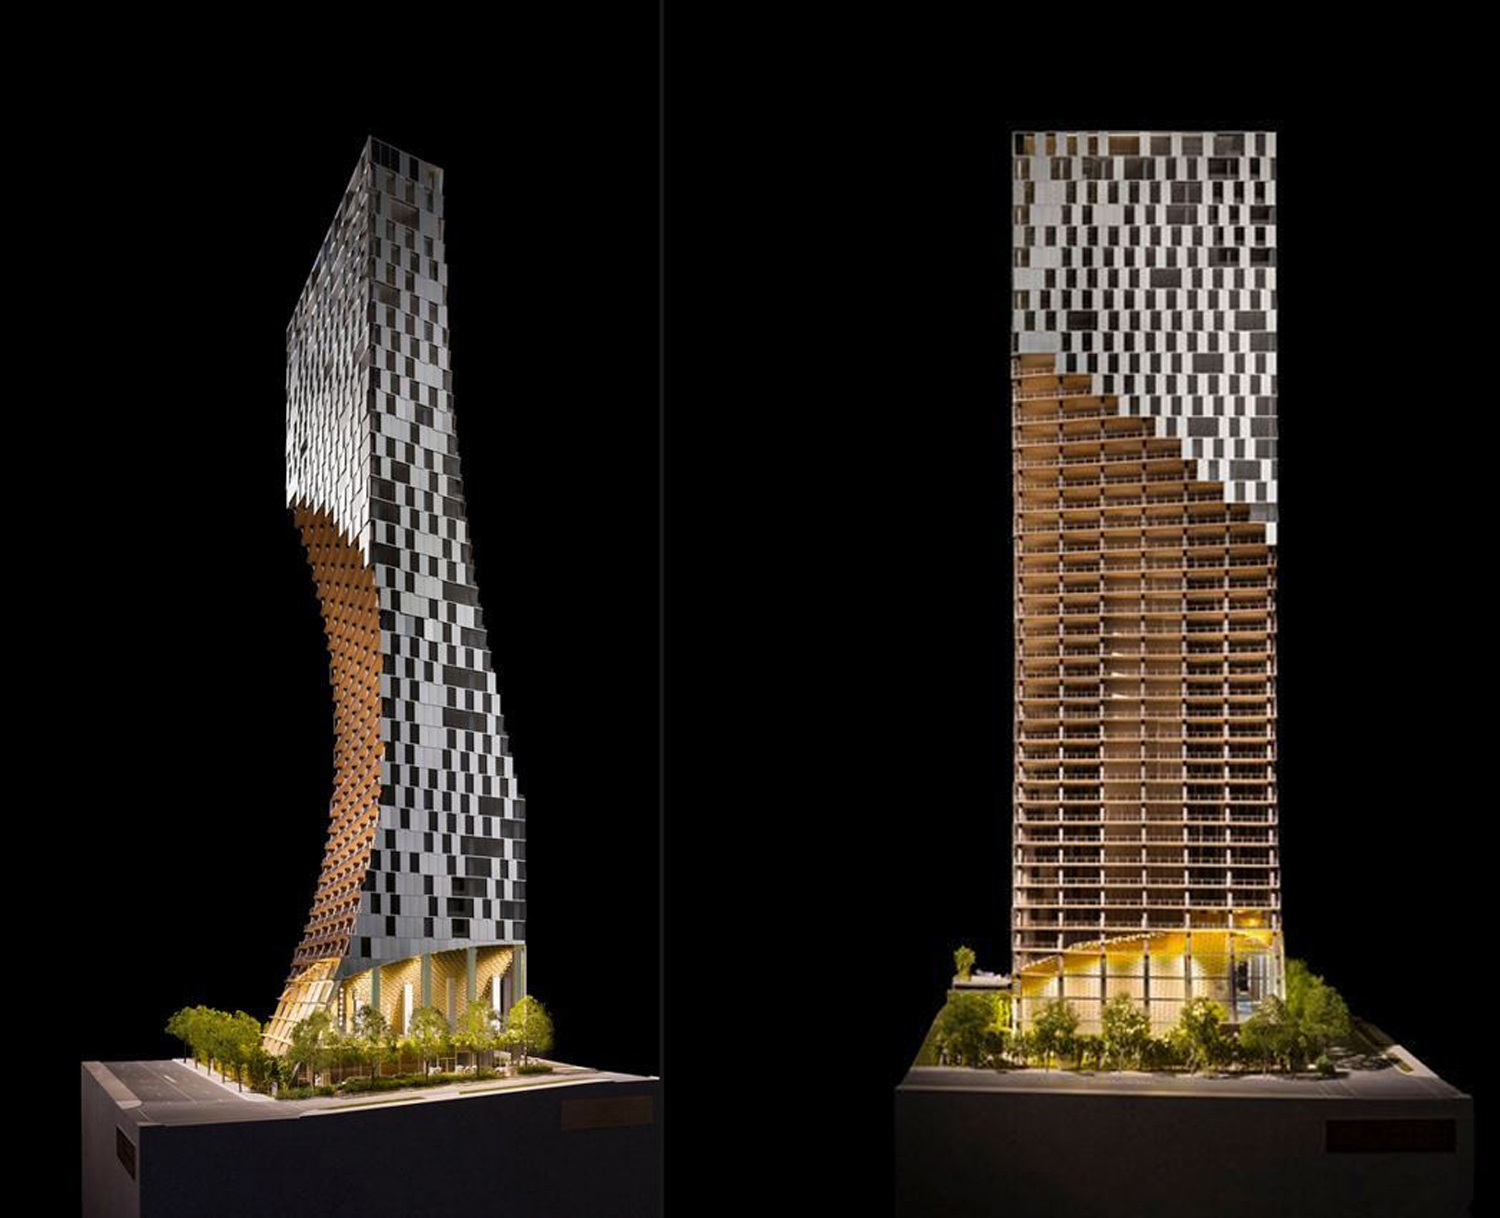 mm_Mixed-Use Skyscraper in Vancouver design by Kengo Kuma_02